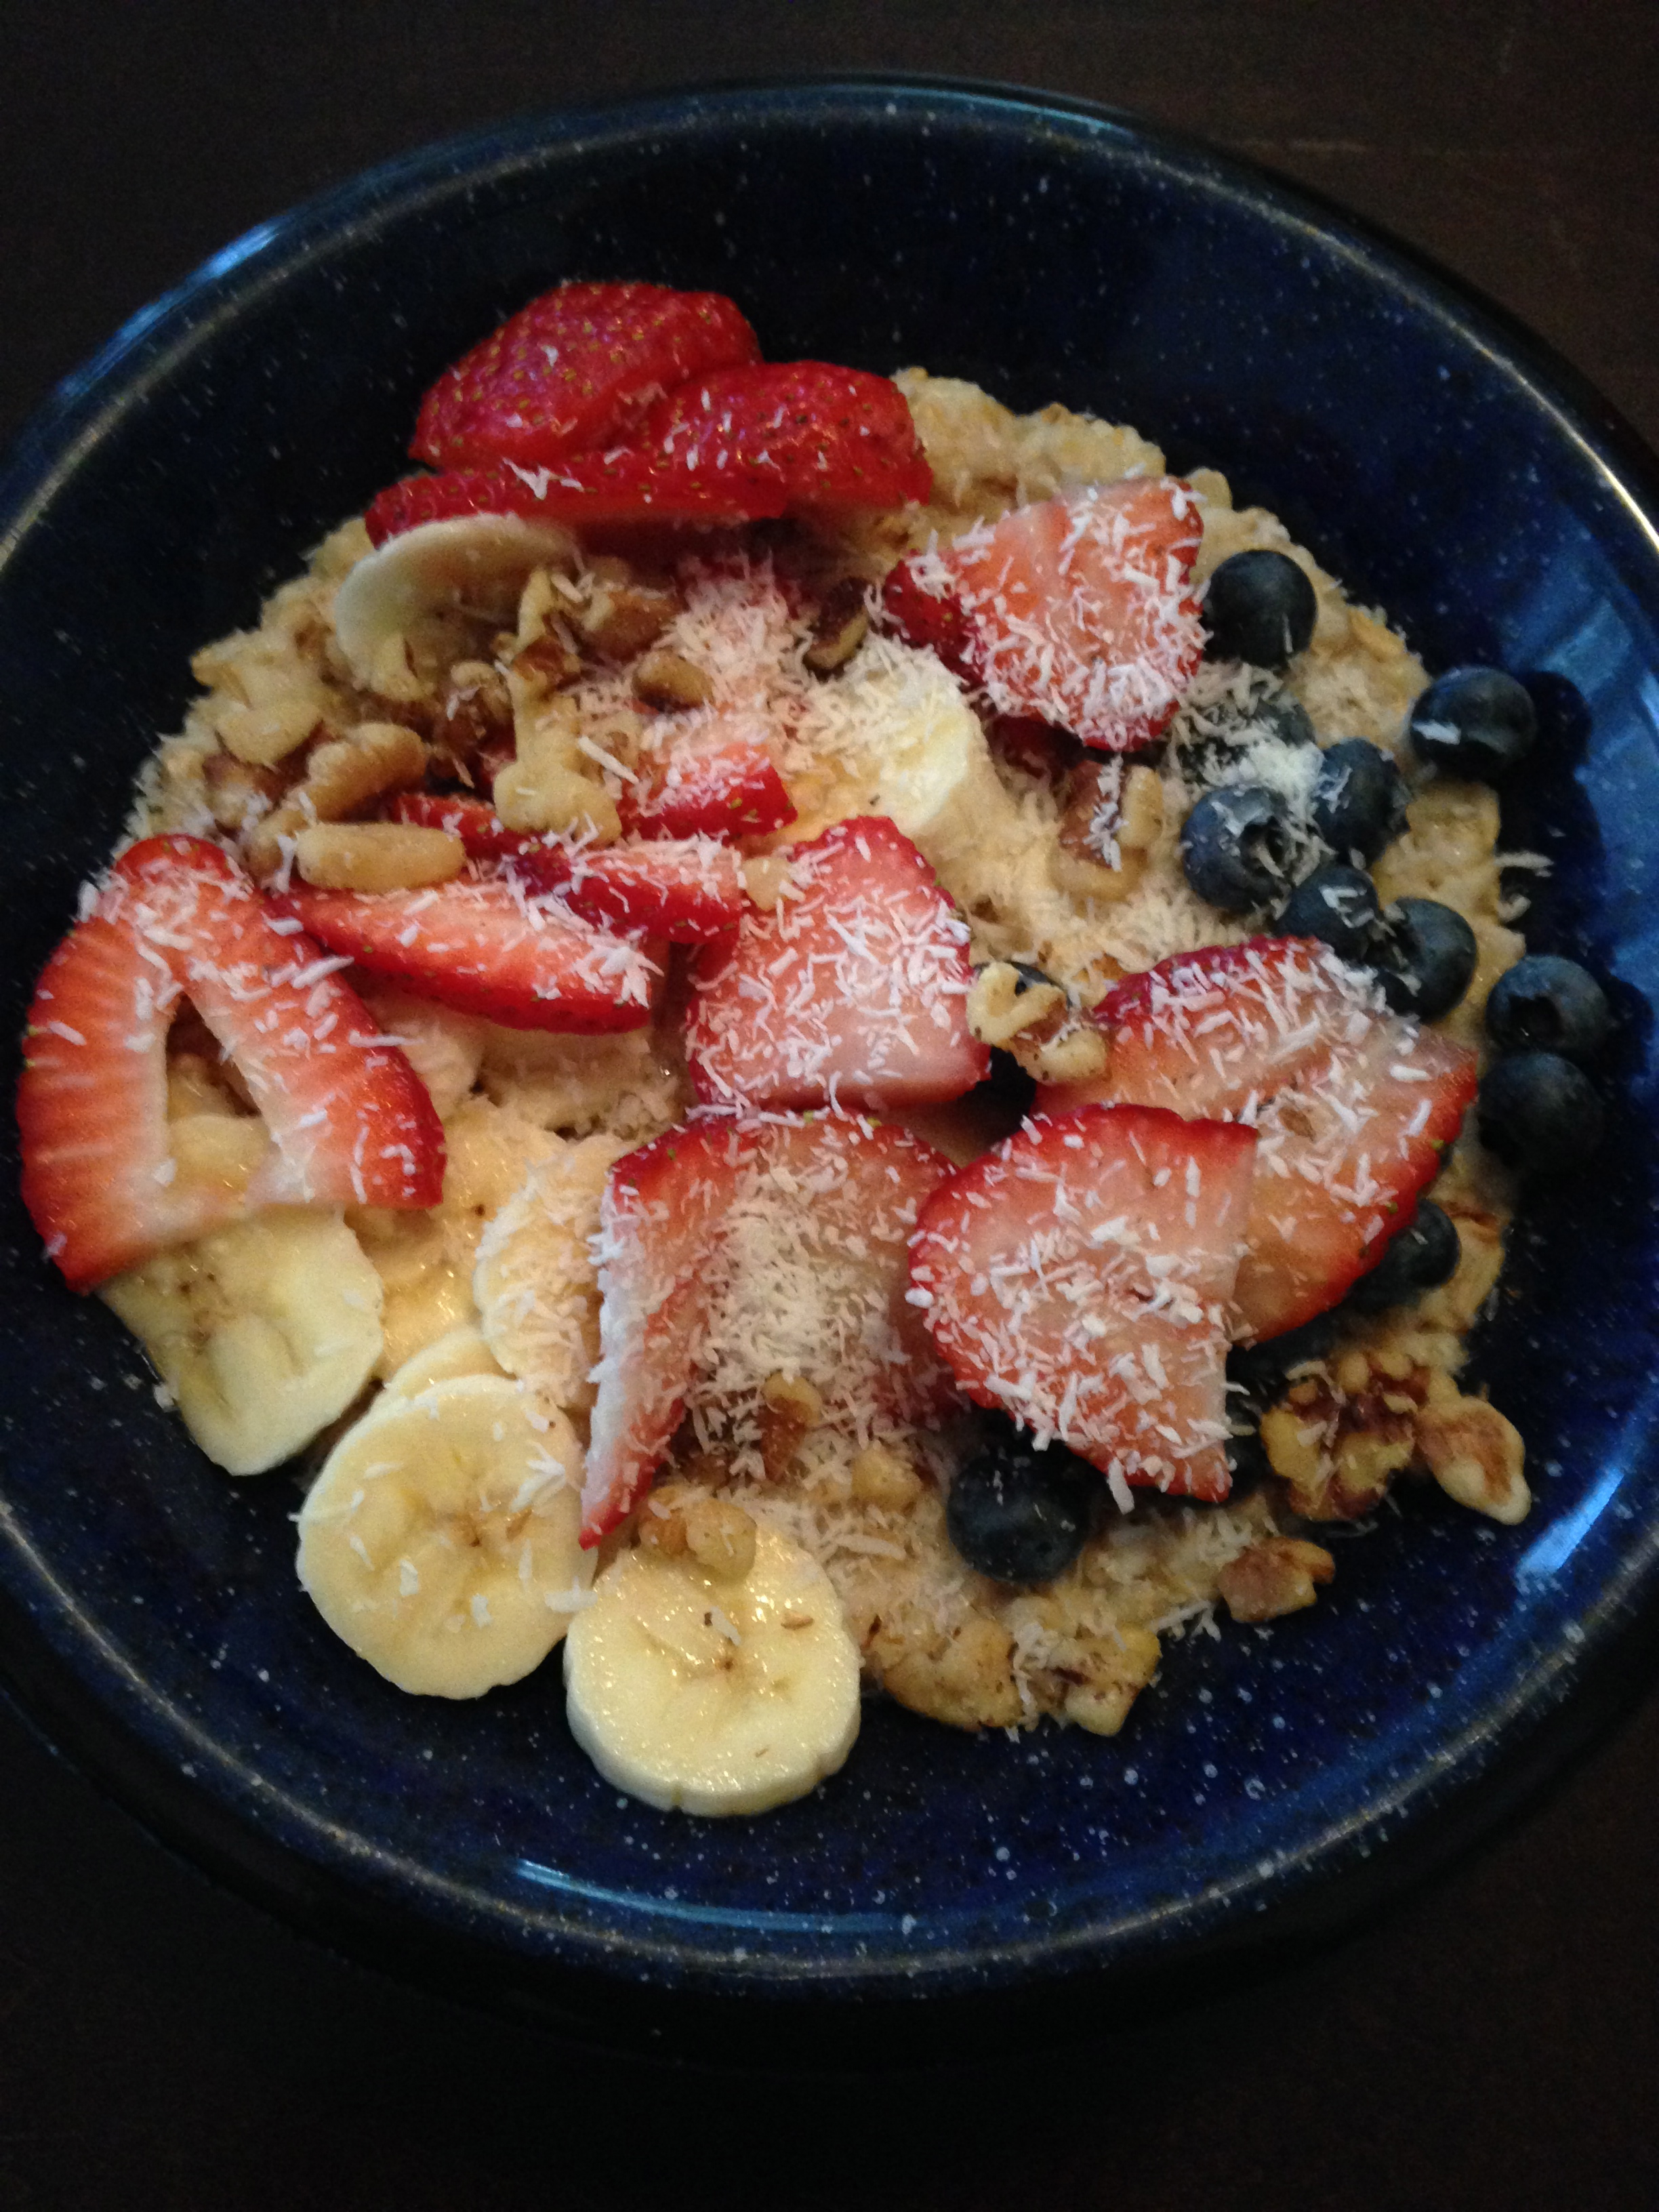 Toppings: 1/2 Tbsp unsweetened shredded coconut flakes, 1/2 sliced banana, 3 strawberries, 2 Tbsp crushed walnuts, 1/4 cup blueberries